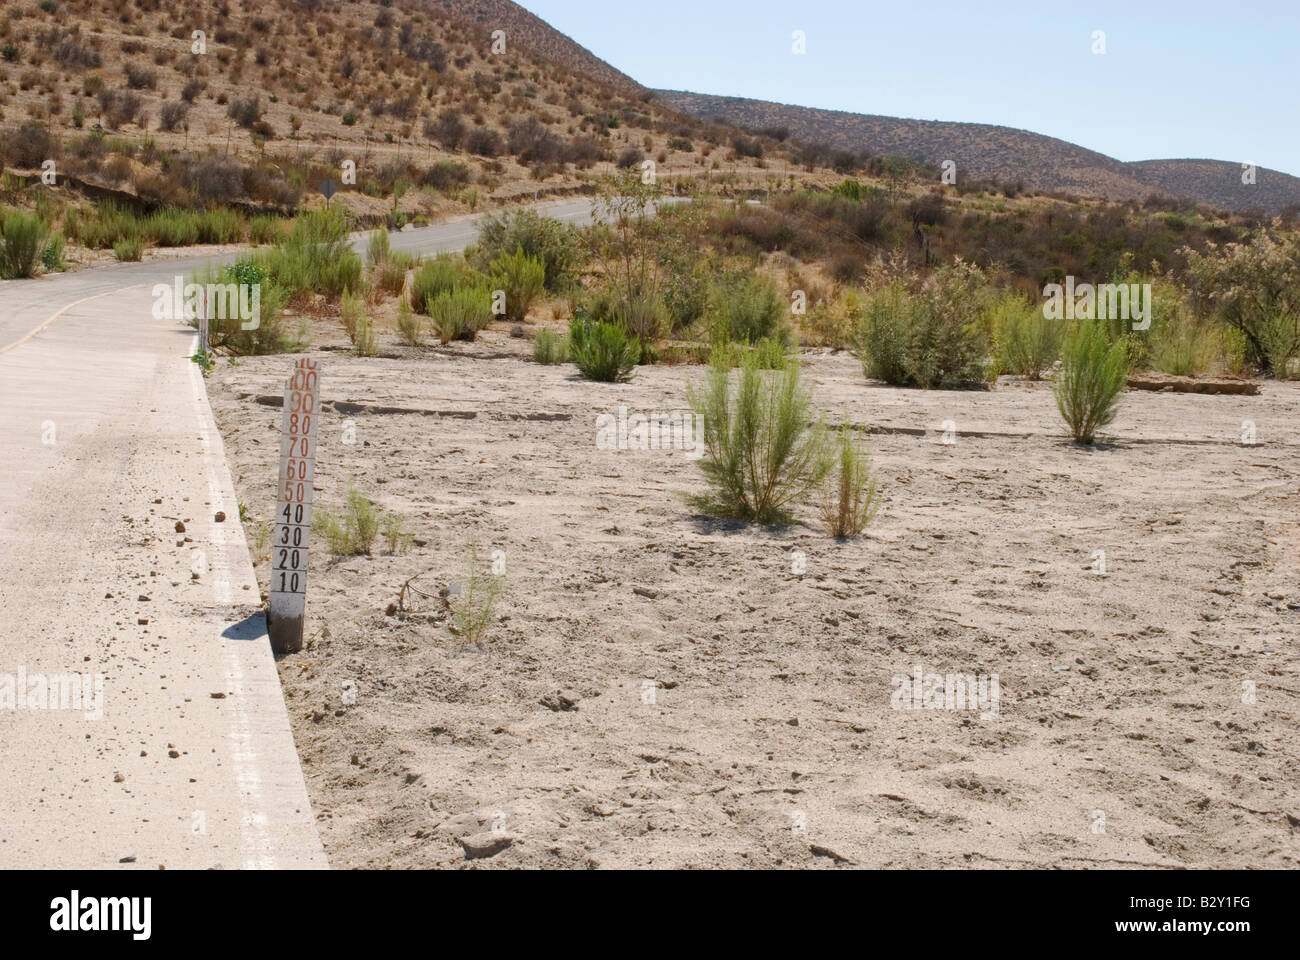 Water depth markers alongside a road subject to flash floods in Baja CA, Mexico - Stock Image